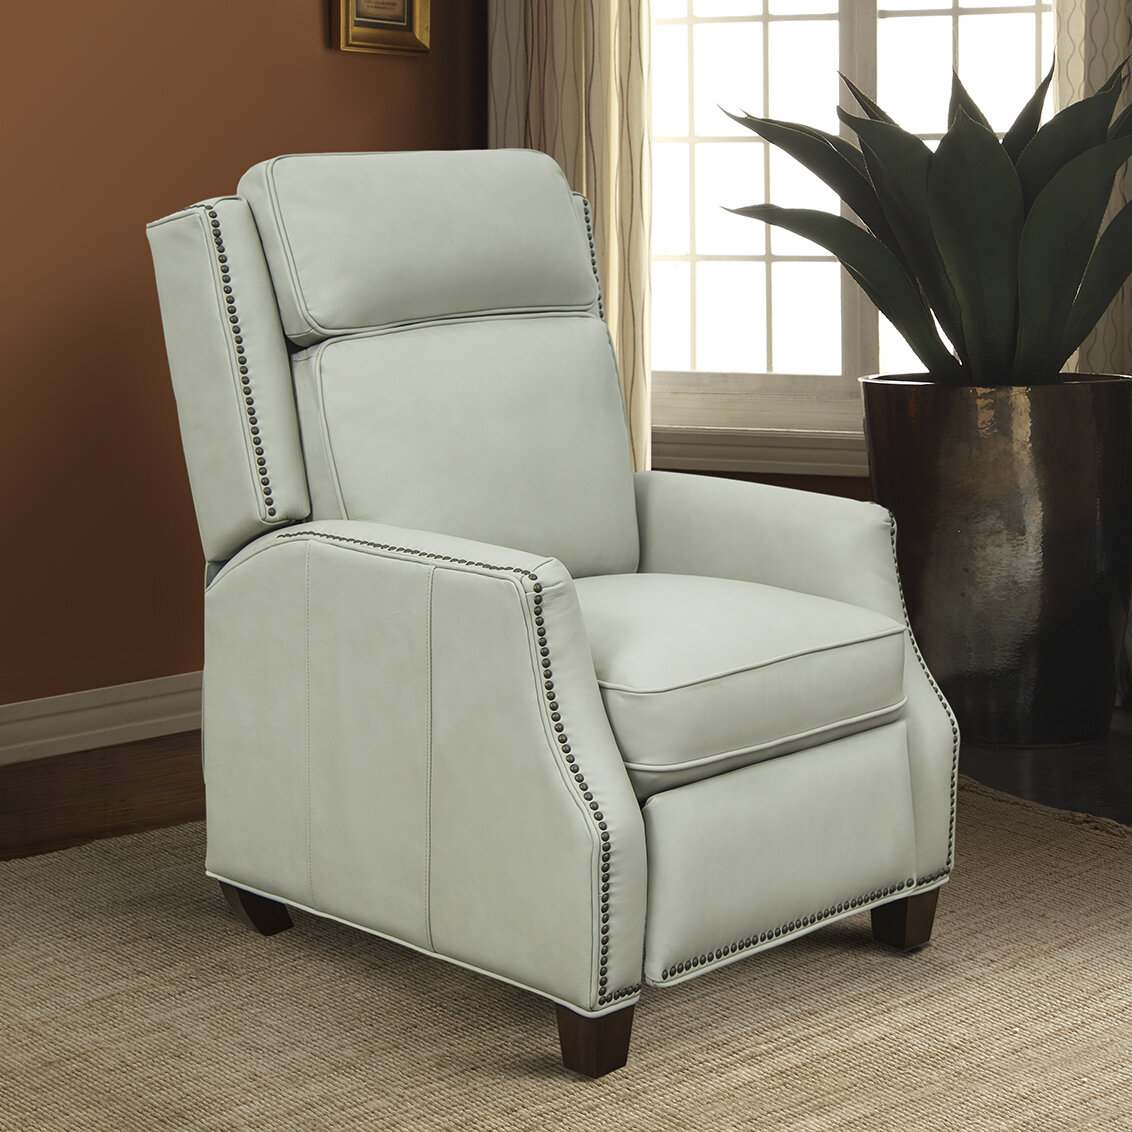 Darby Home Co Kathi Genuine Leather Manual Recliner Wayfair